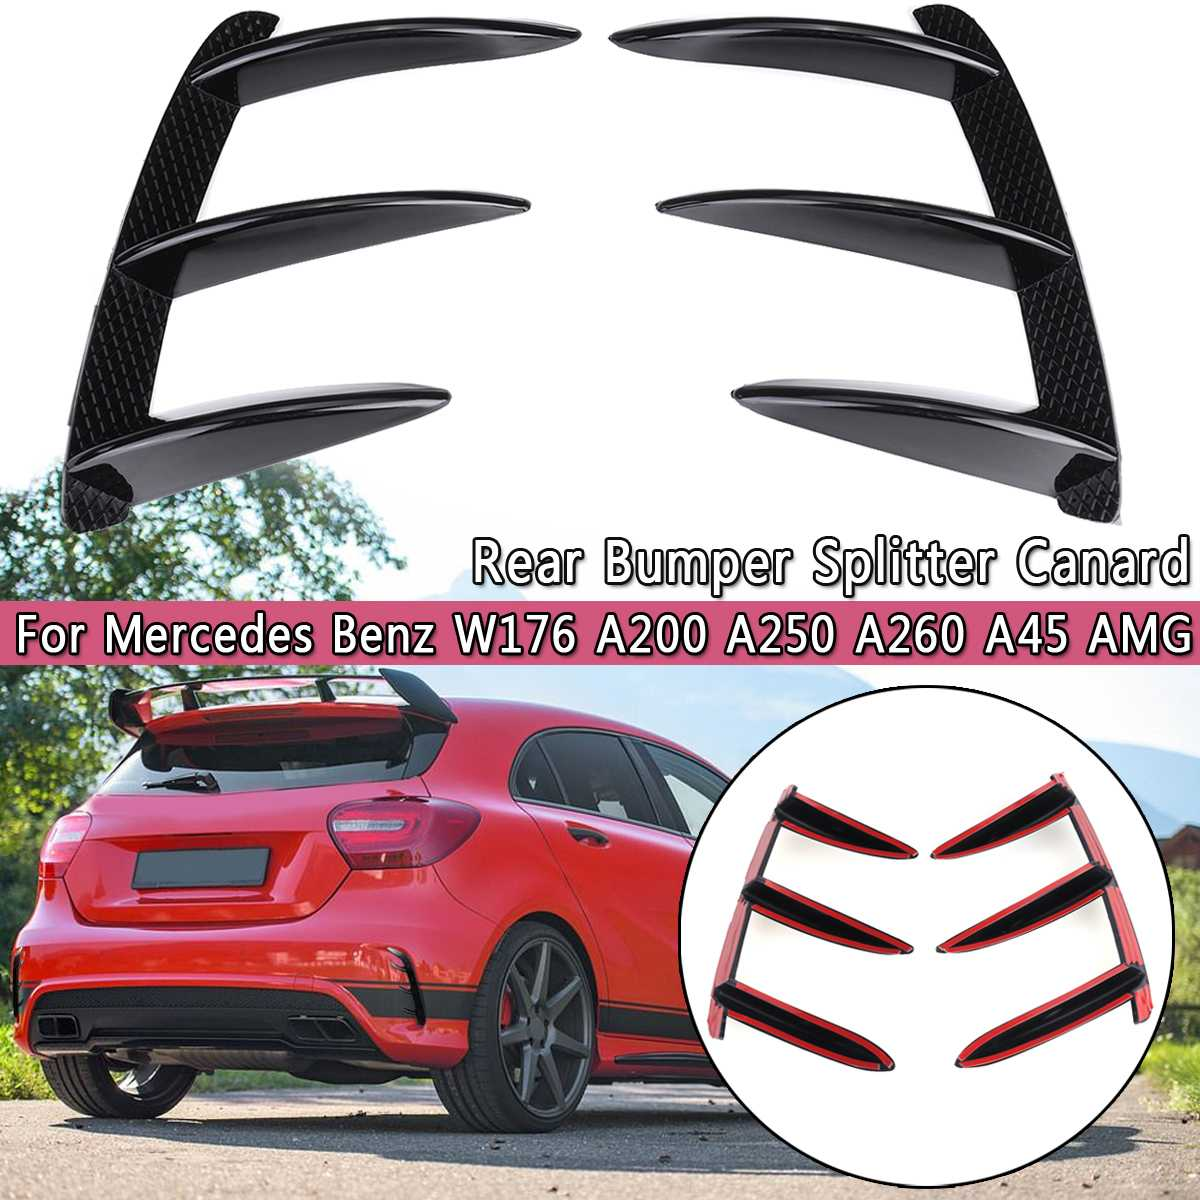 Pair Car Painted ABS Rear Bumper Splitter Spoilers Canard for Mercedes for Benz W176 <font><b>A200</b></font> A250 A260 A45 for <font><b>AMG</b></font> Rear Splitter image